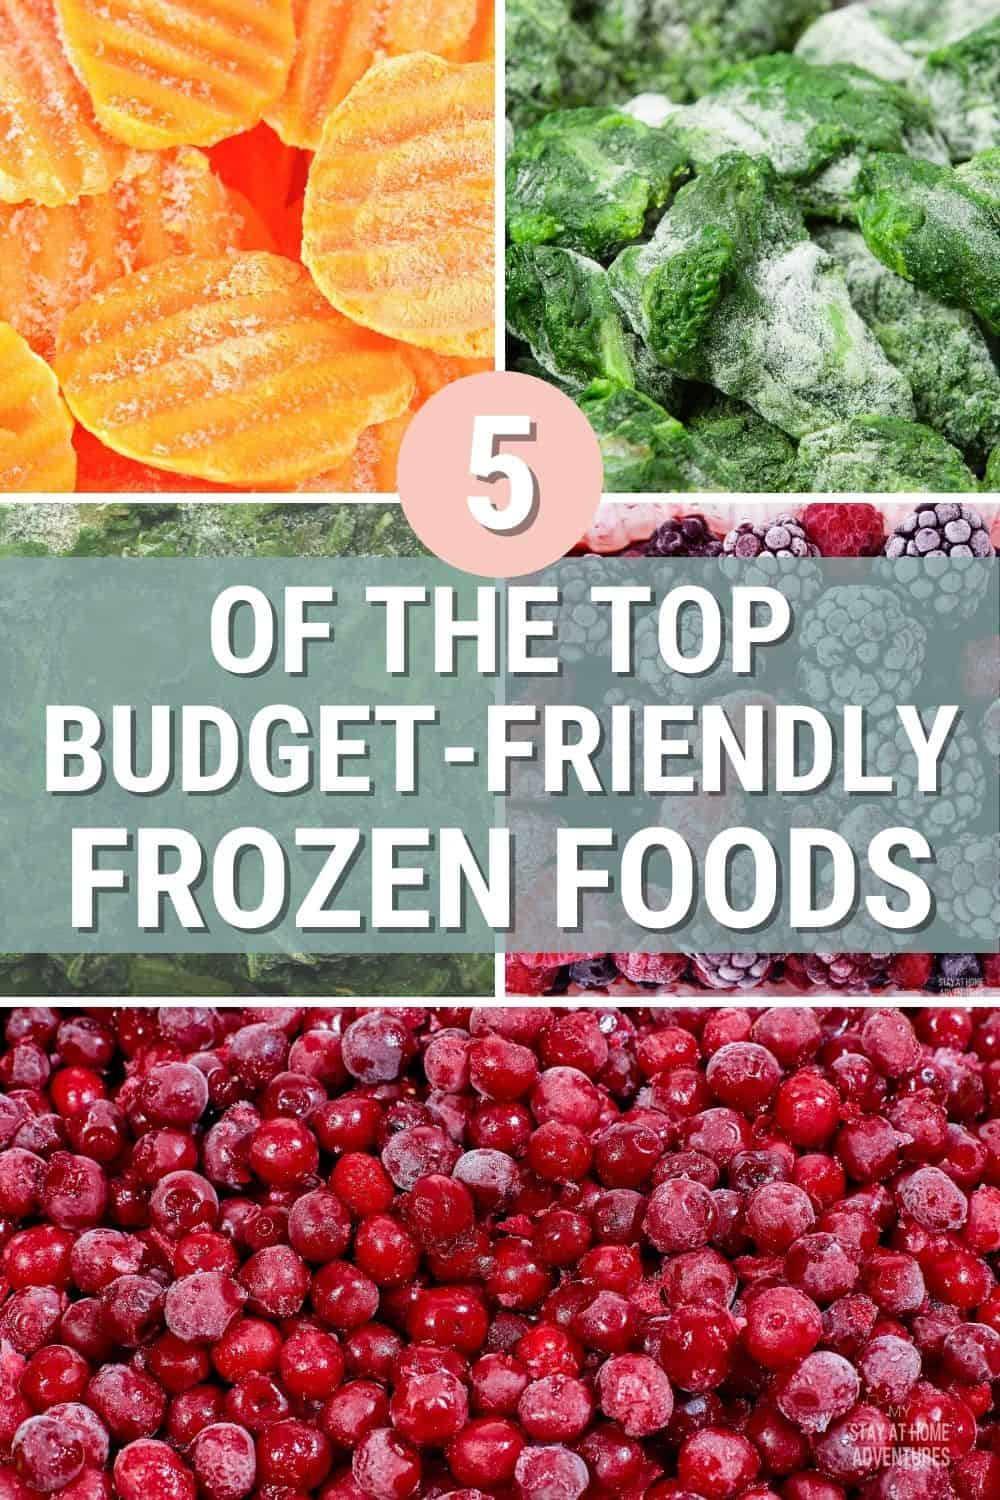 When buying frozen food, which one is good for you and your family and the budget-friendly one? Learn the top 5 best frozen foods. via @mystayathome